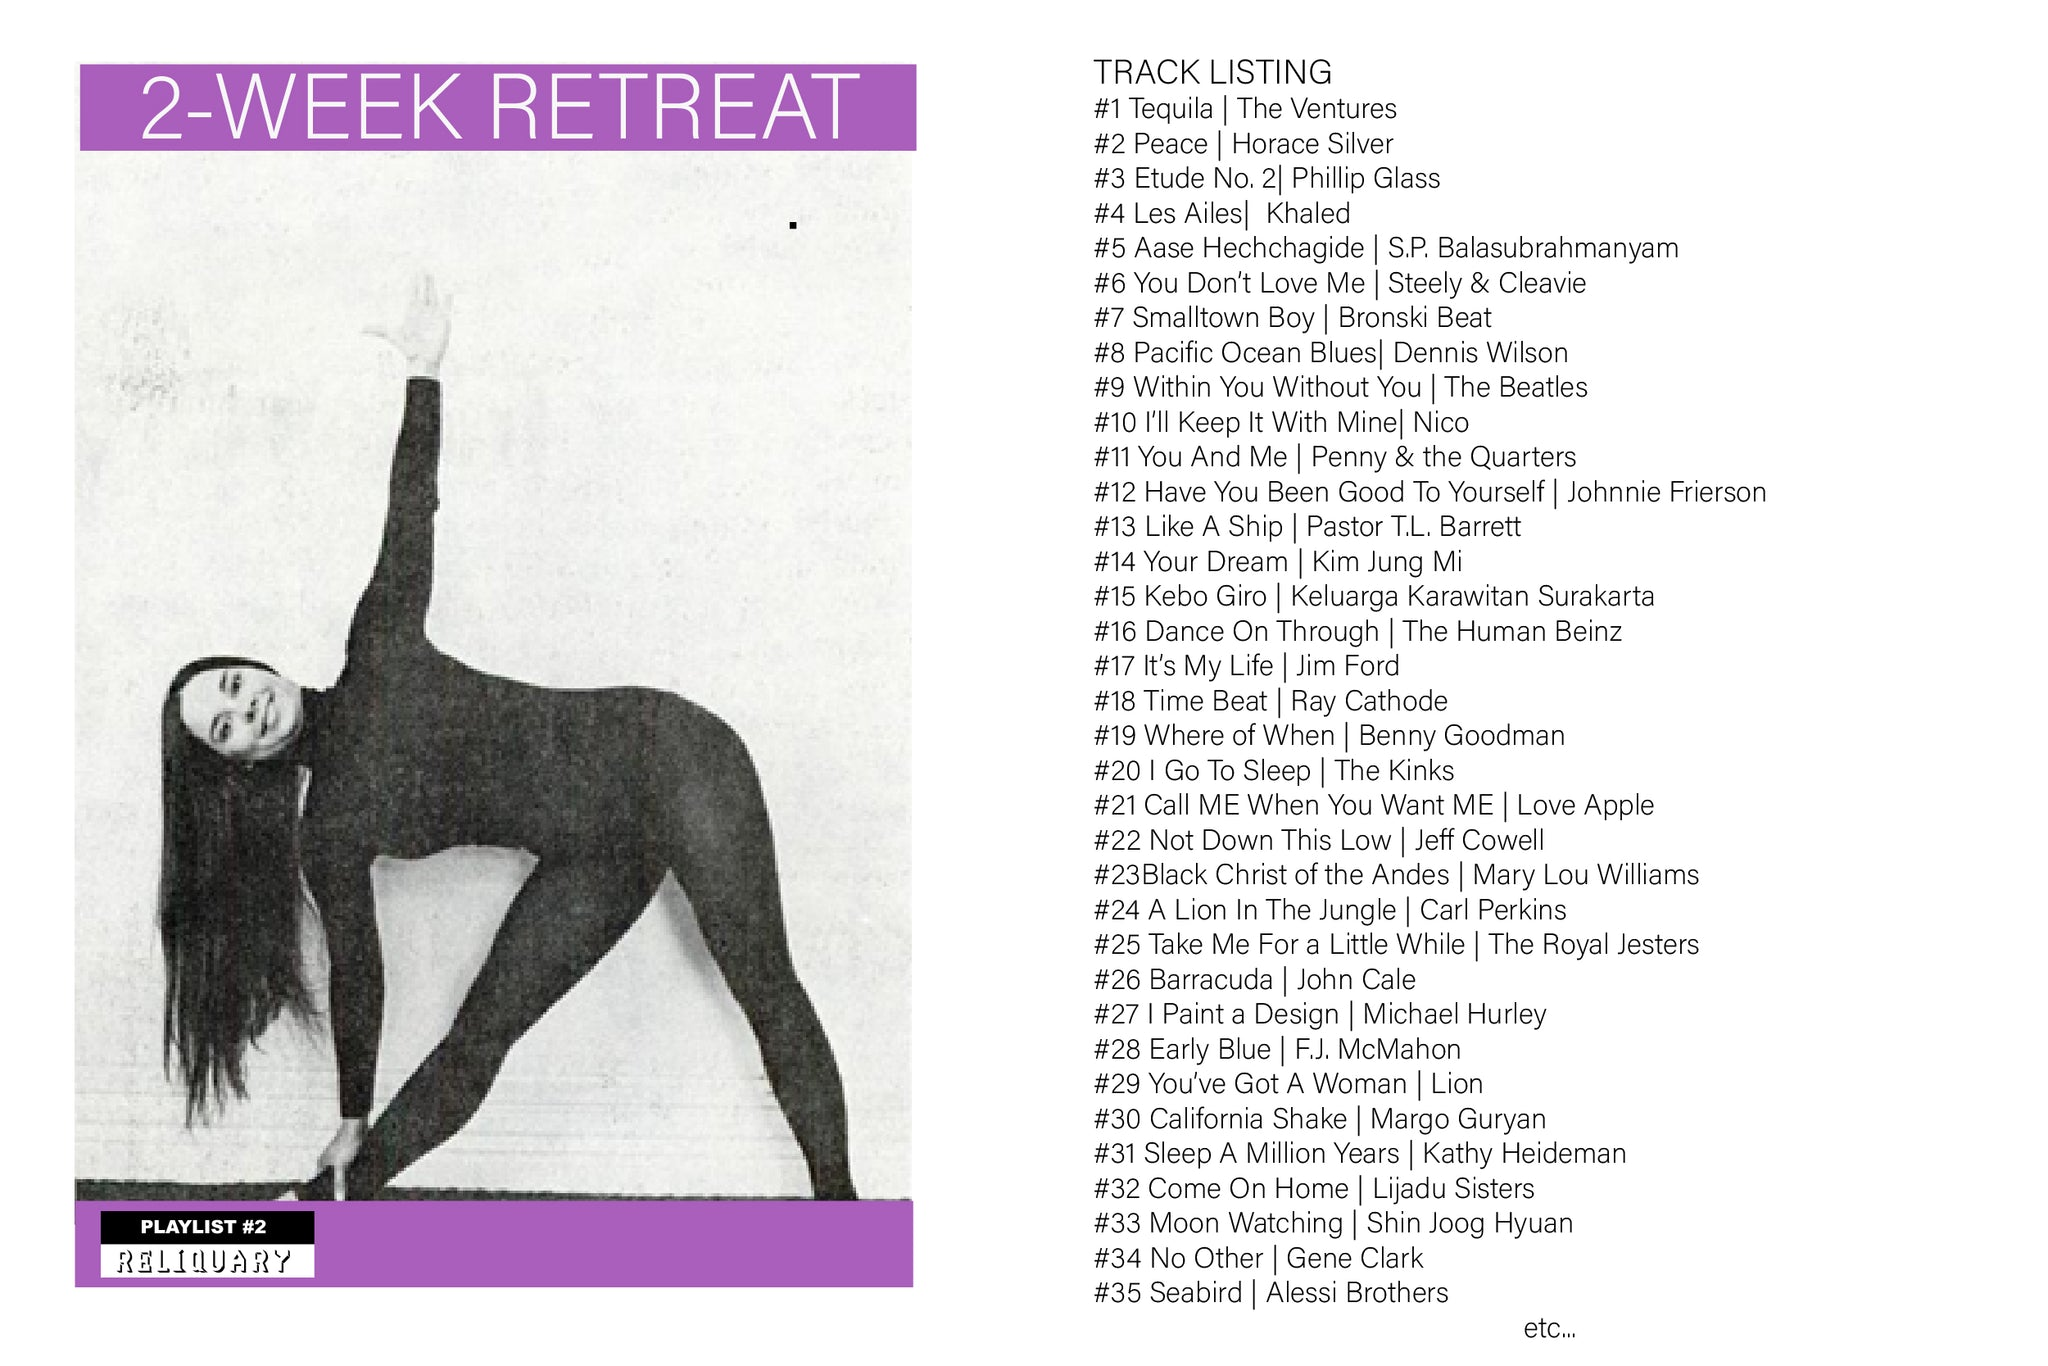 Reliquary Playlist #2 | 2-Week Retreat